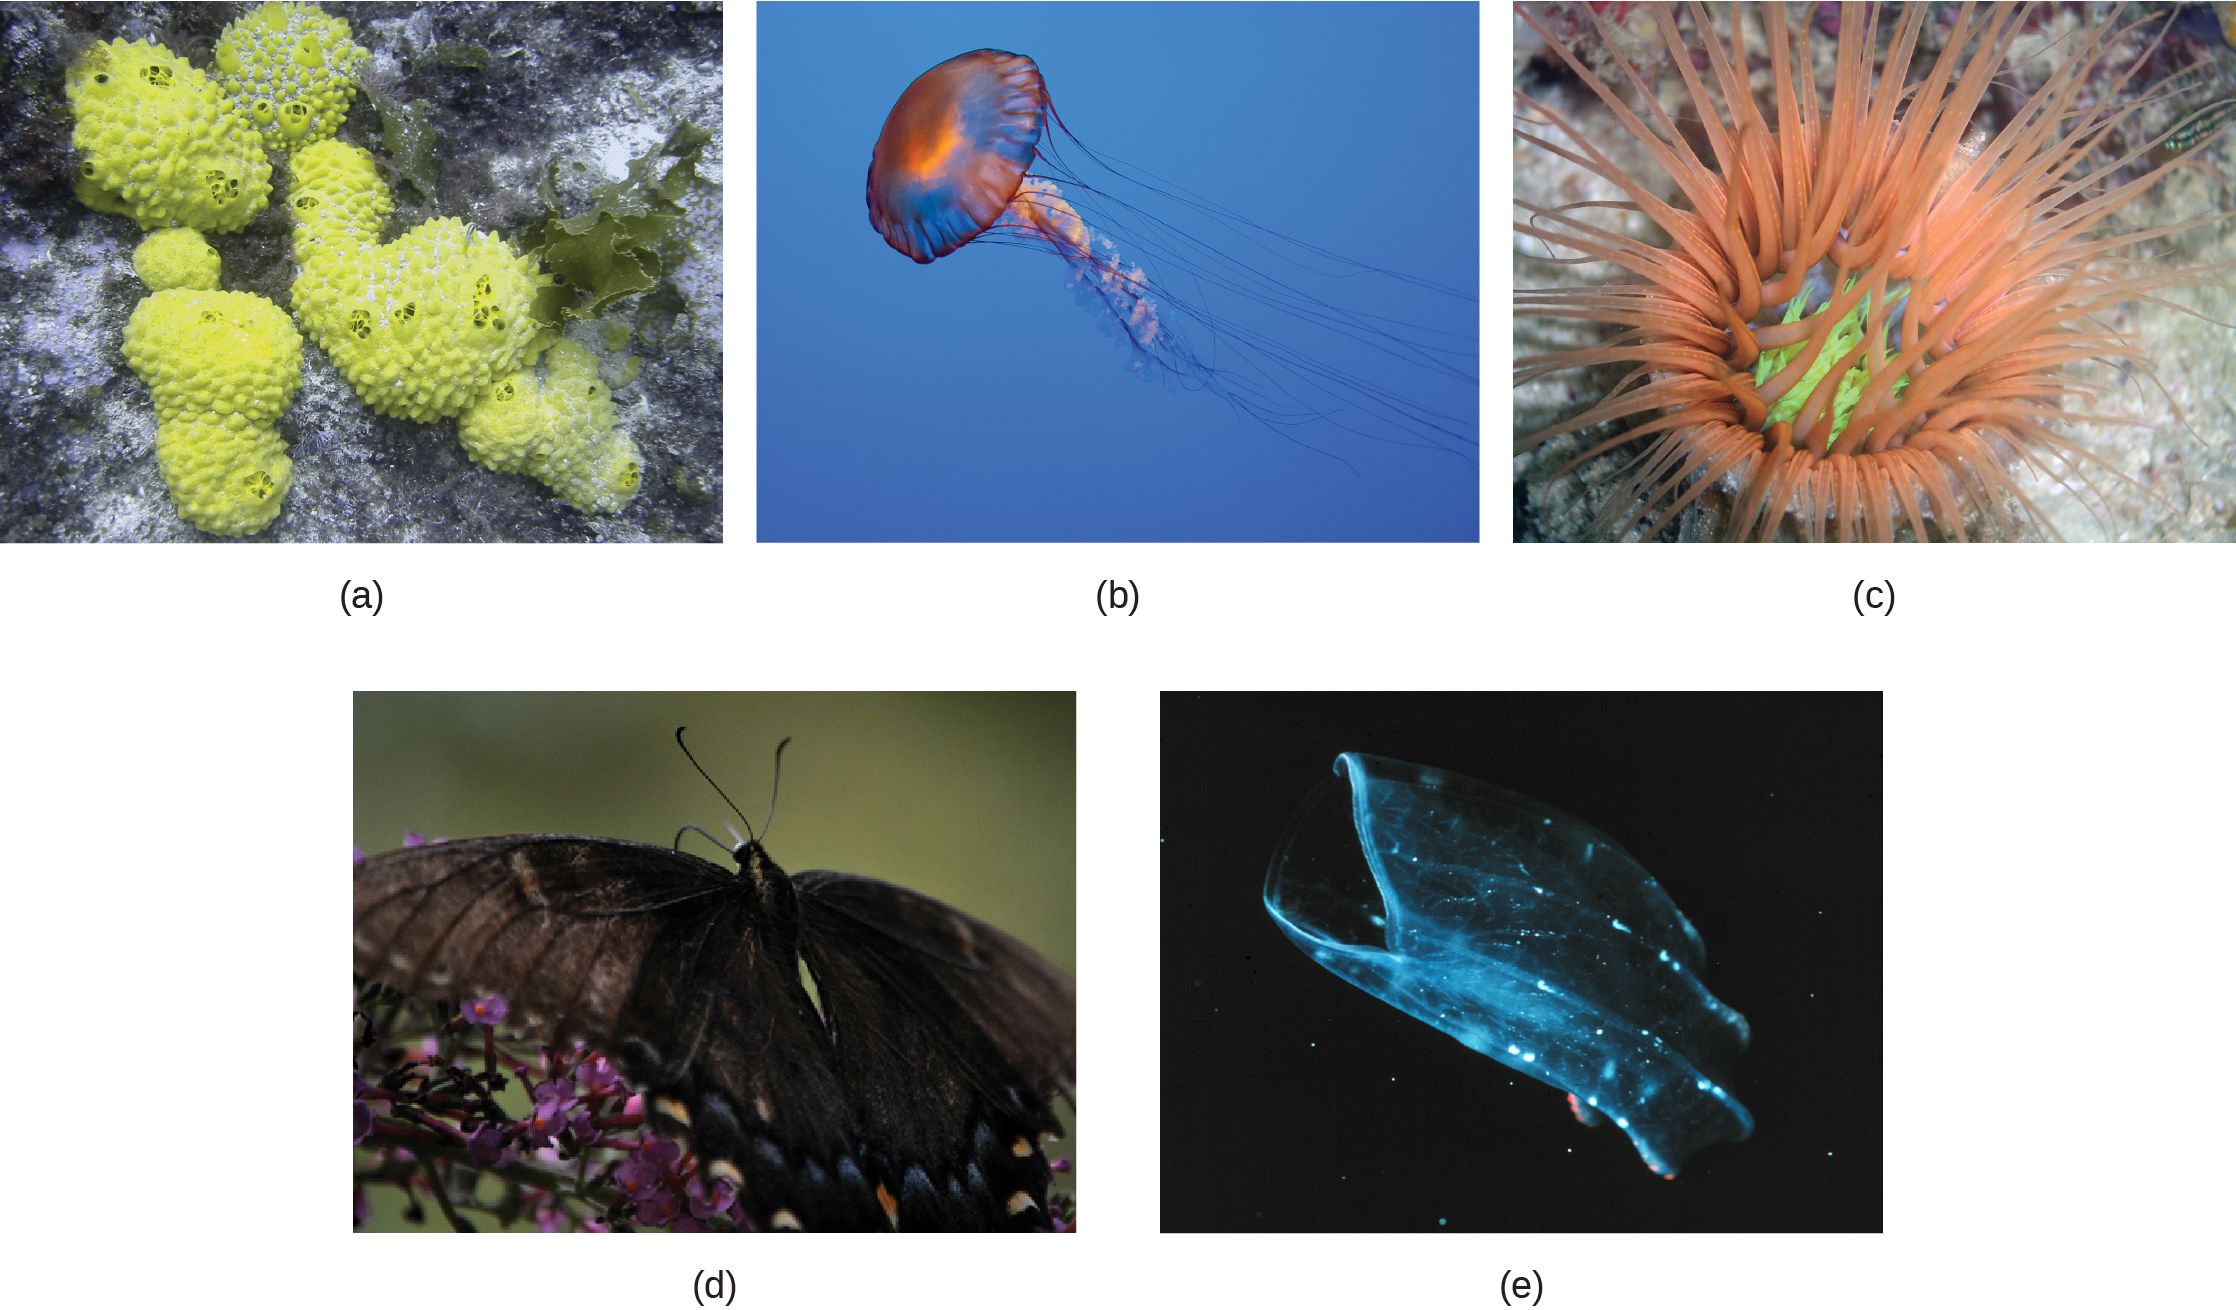 Part a shows several sponges, which form irregular, bumpy blobs on the sea floor. Part b shows a jellyfish with long, slender tentacles, radiating from a flexible, disc-shaped body. Part c shows an anemone sitting on the sea floor with thick tentacles, radiating up from a cup-shaped body. Part d shows a black butterfly with two symmetrical wings. Part e shows a beroe, which is a type of jelly fish, semi-transparent with more solid ribs and a visible opening at one end.